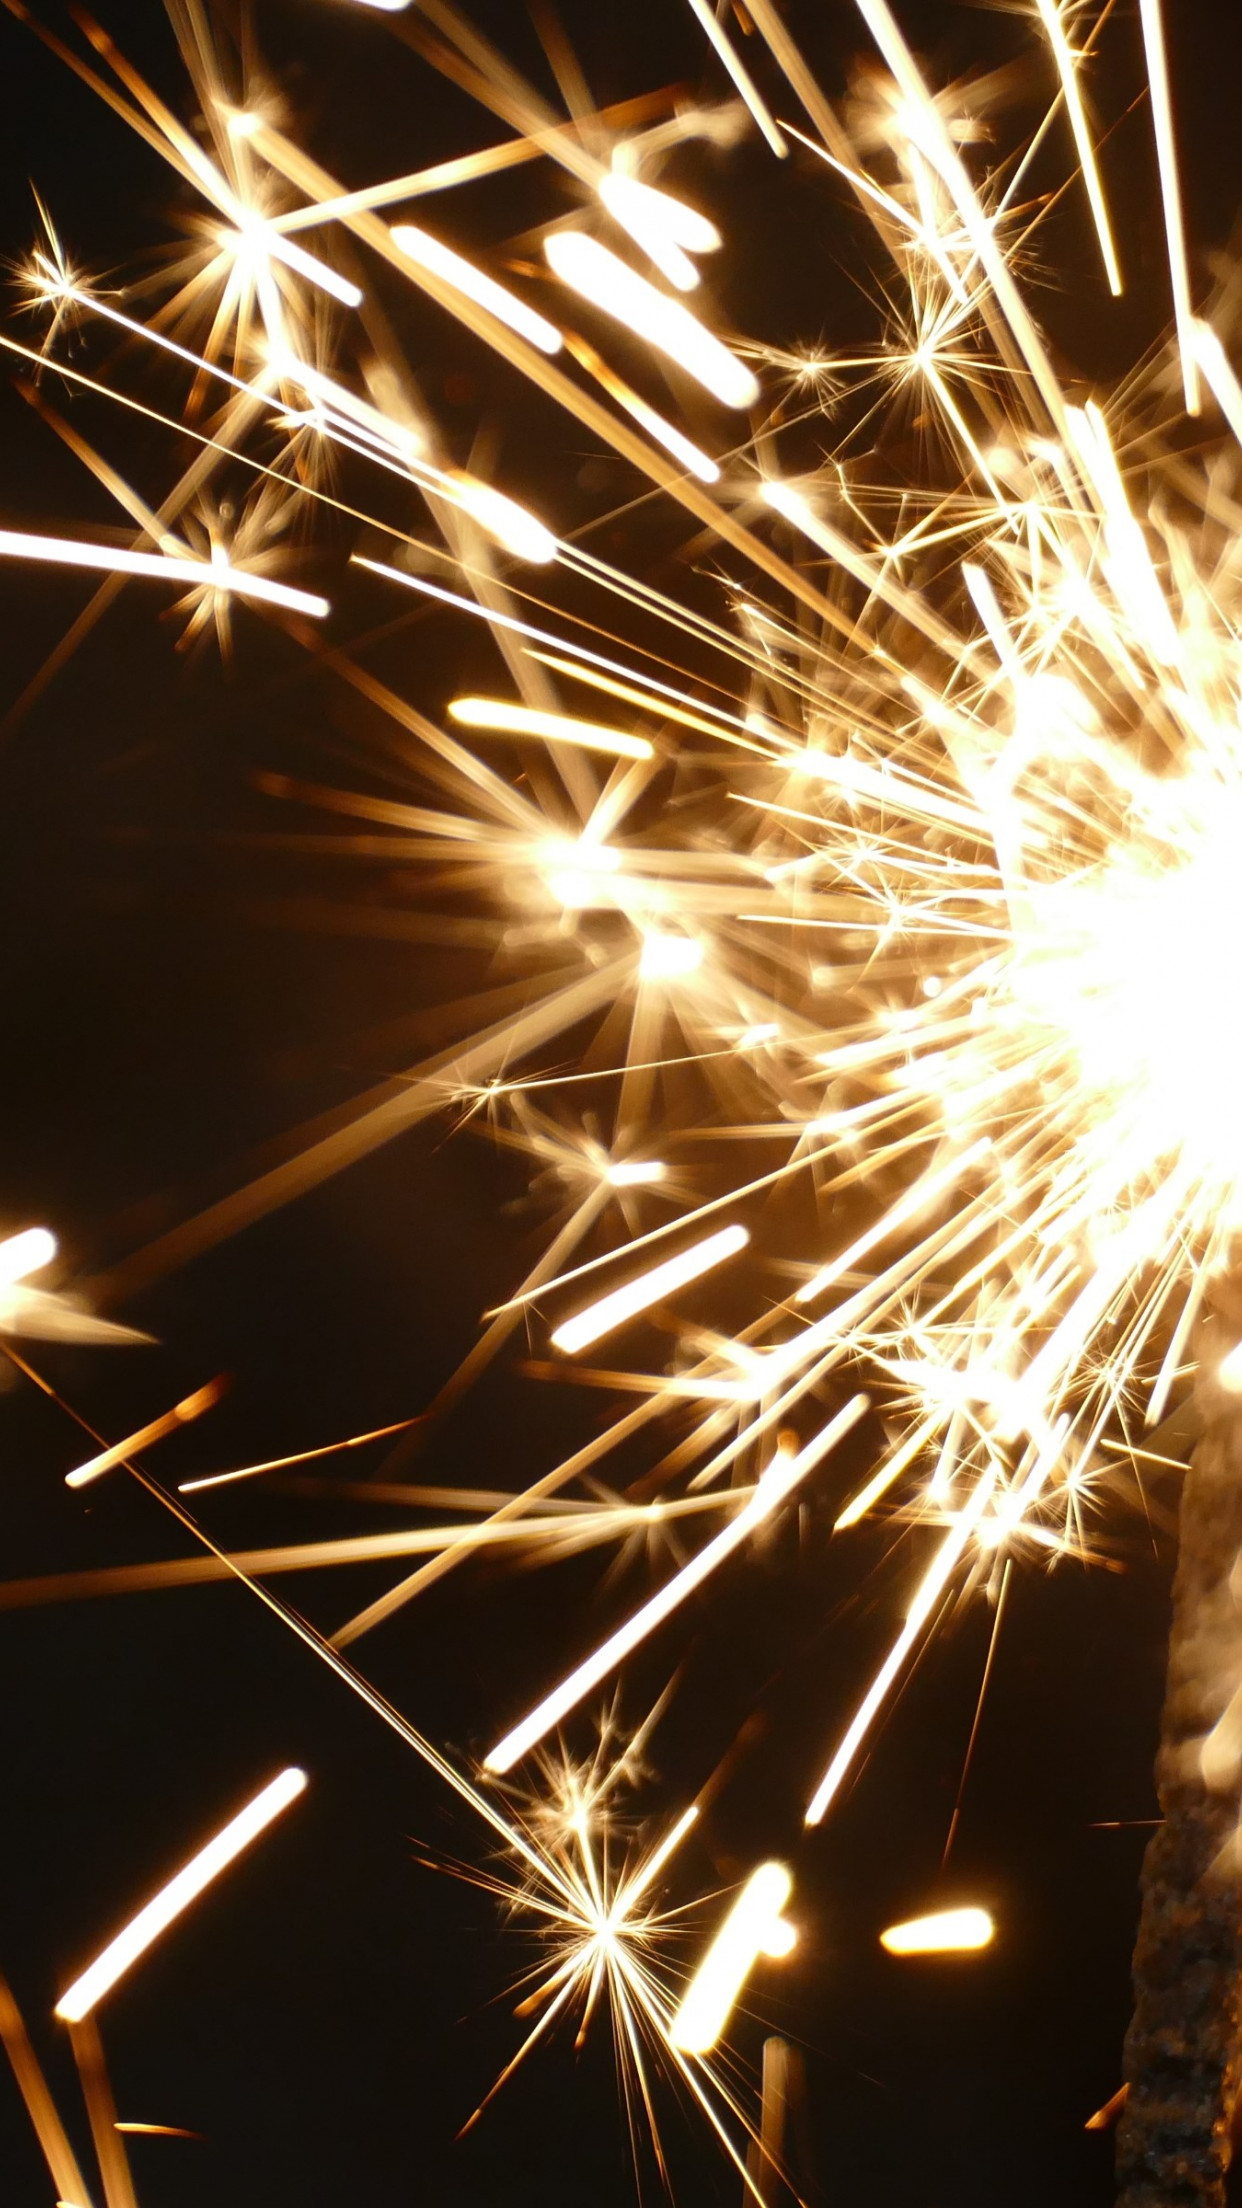 Sparklers for new year wallpaper 1242x2208